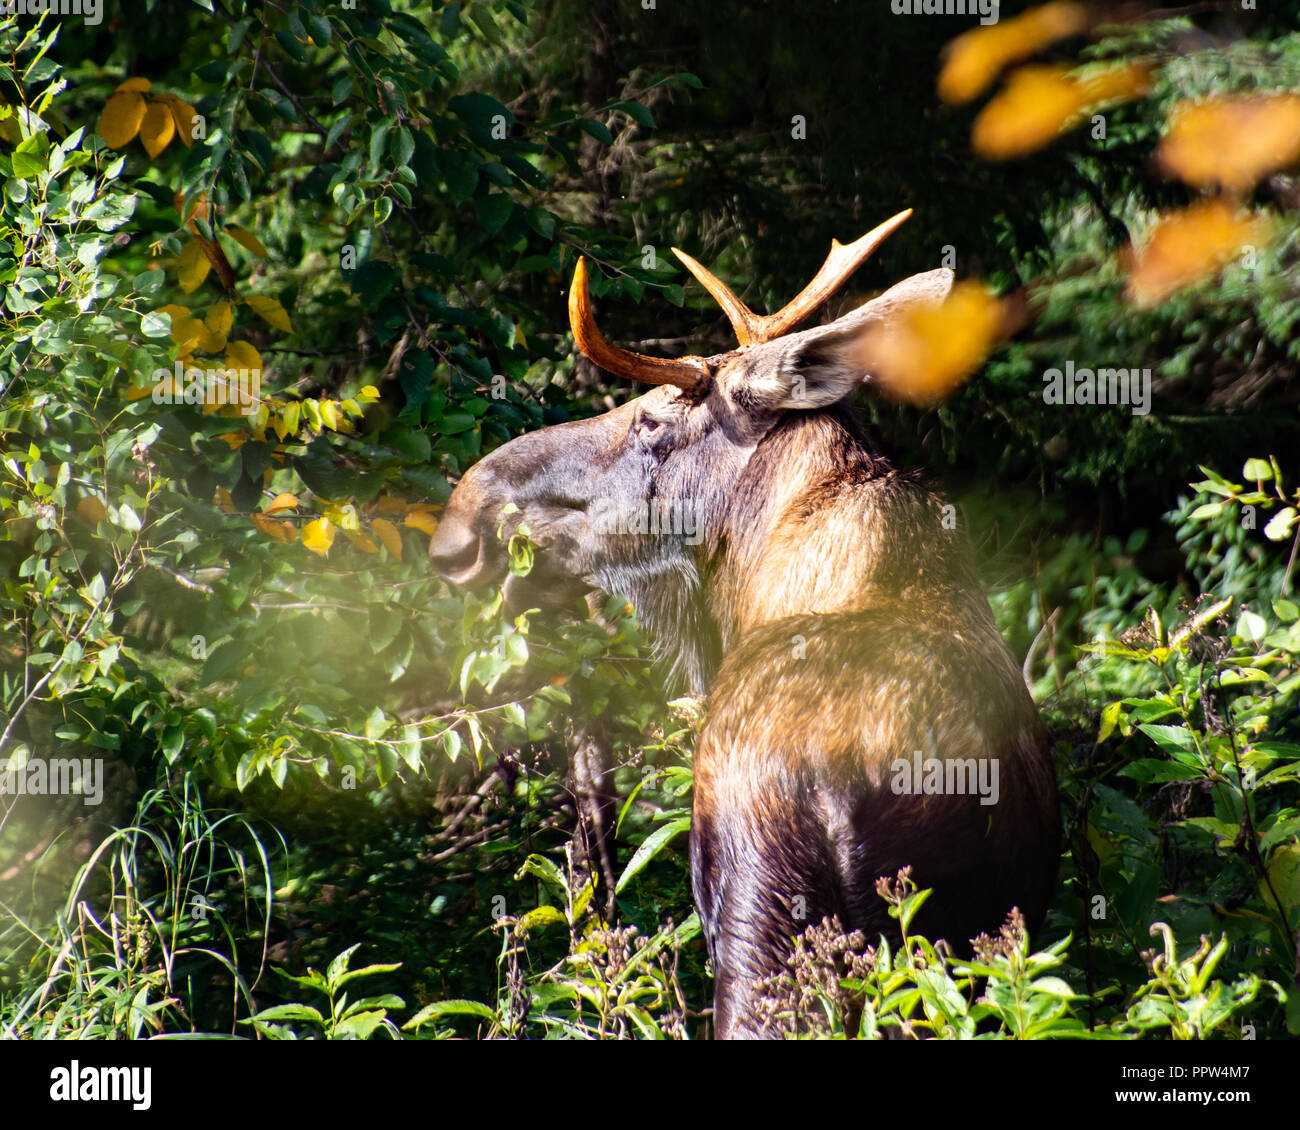 an-elusive-young-bull-moose-alces-alces-hiding-in-the-adirondack-mountains-ny-wilderness-feeding-on-vegetation-PPW4M7.jpg